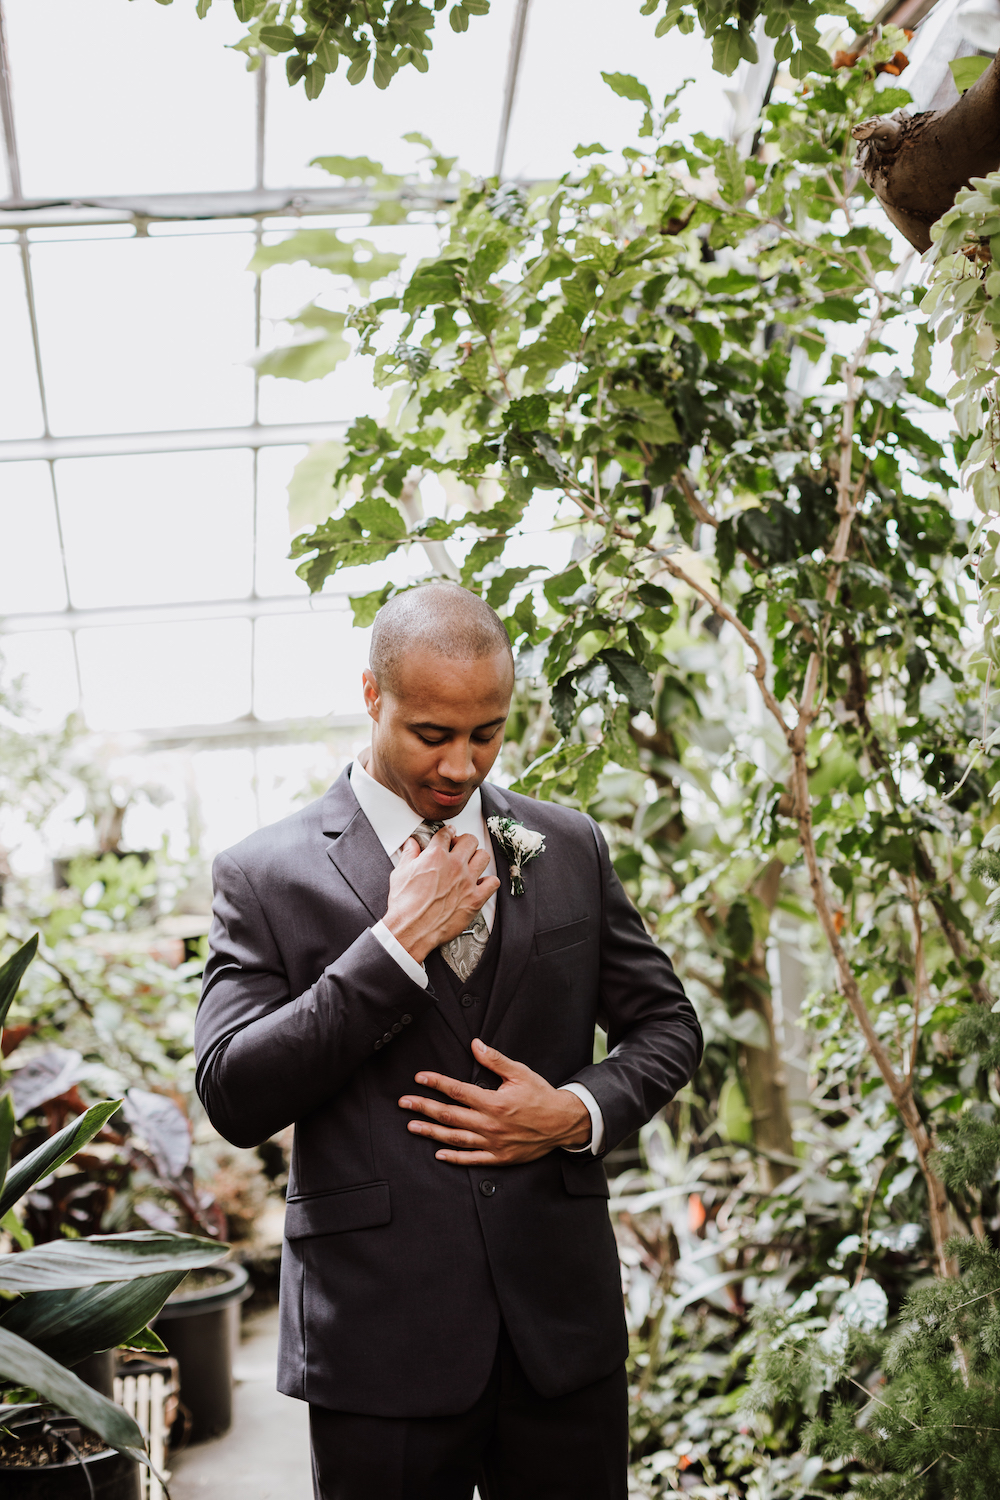 Groom Greenhouse First Look | Central Washington University Wedding With The Sweetest Backstory on A